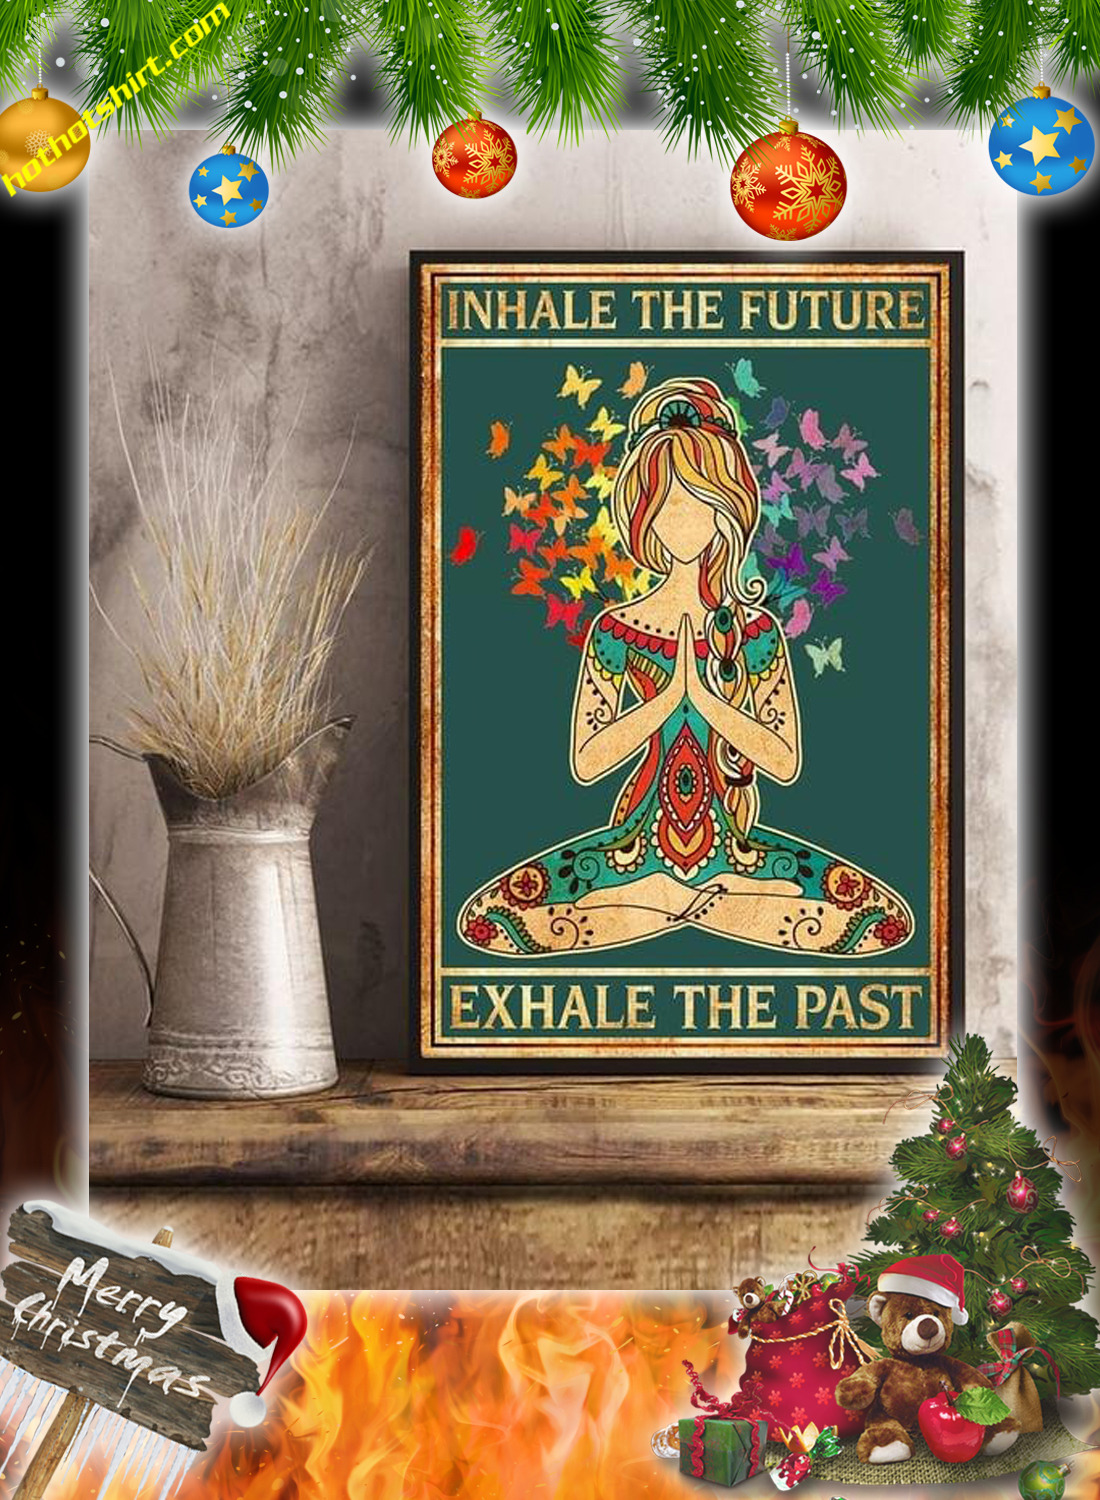 Yoga inhale the future exhale the past poster 1